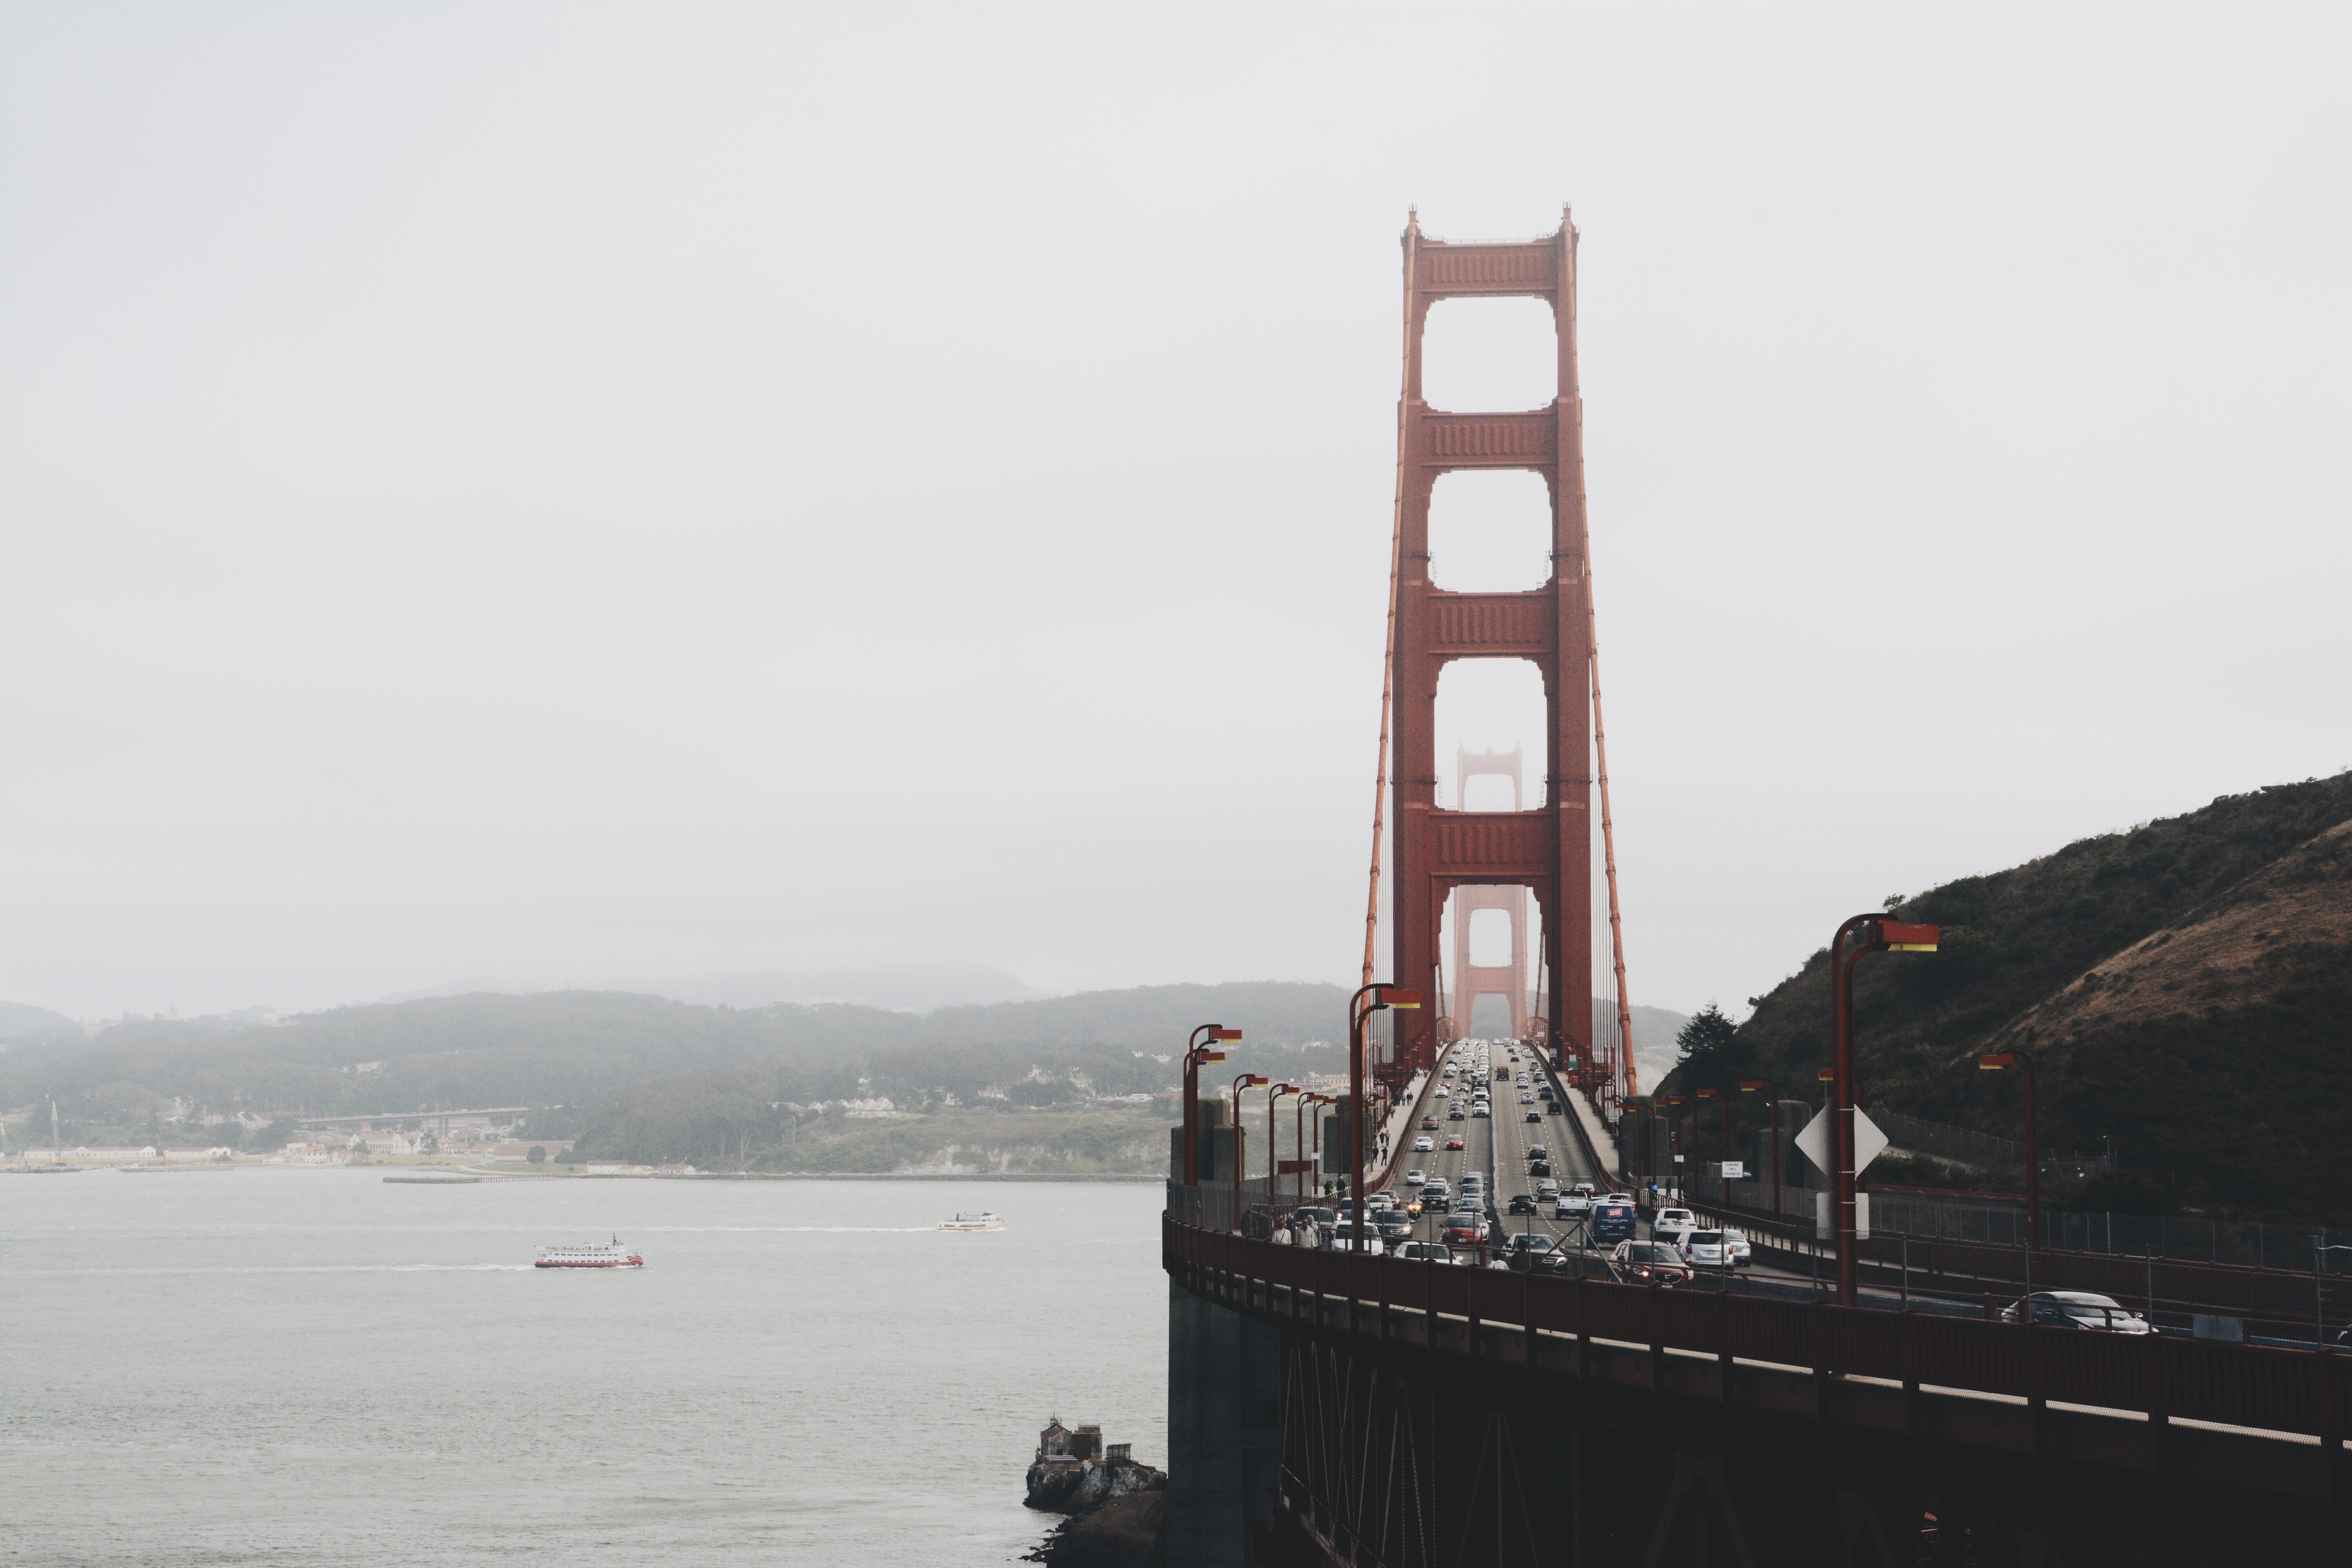 Long shot of Golden Gate Bridge busy traffic and San Francisco Bay on grey misty day